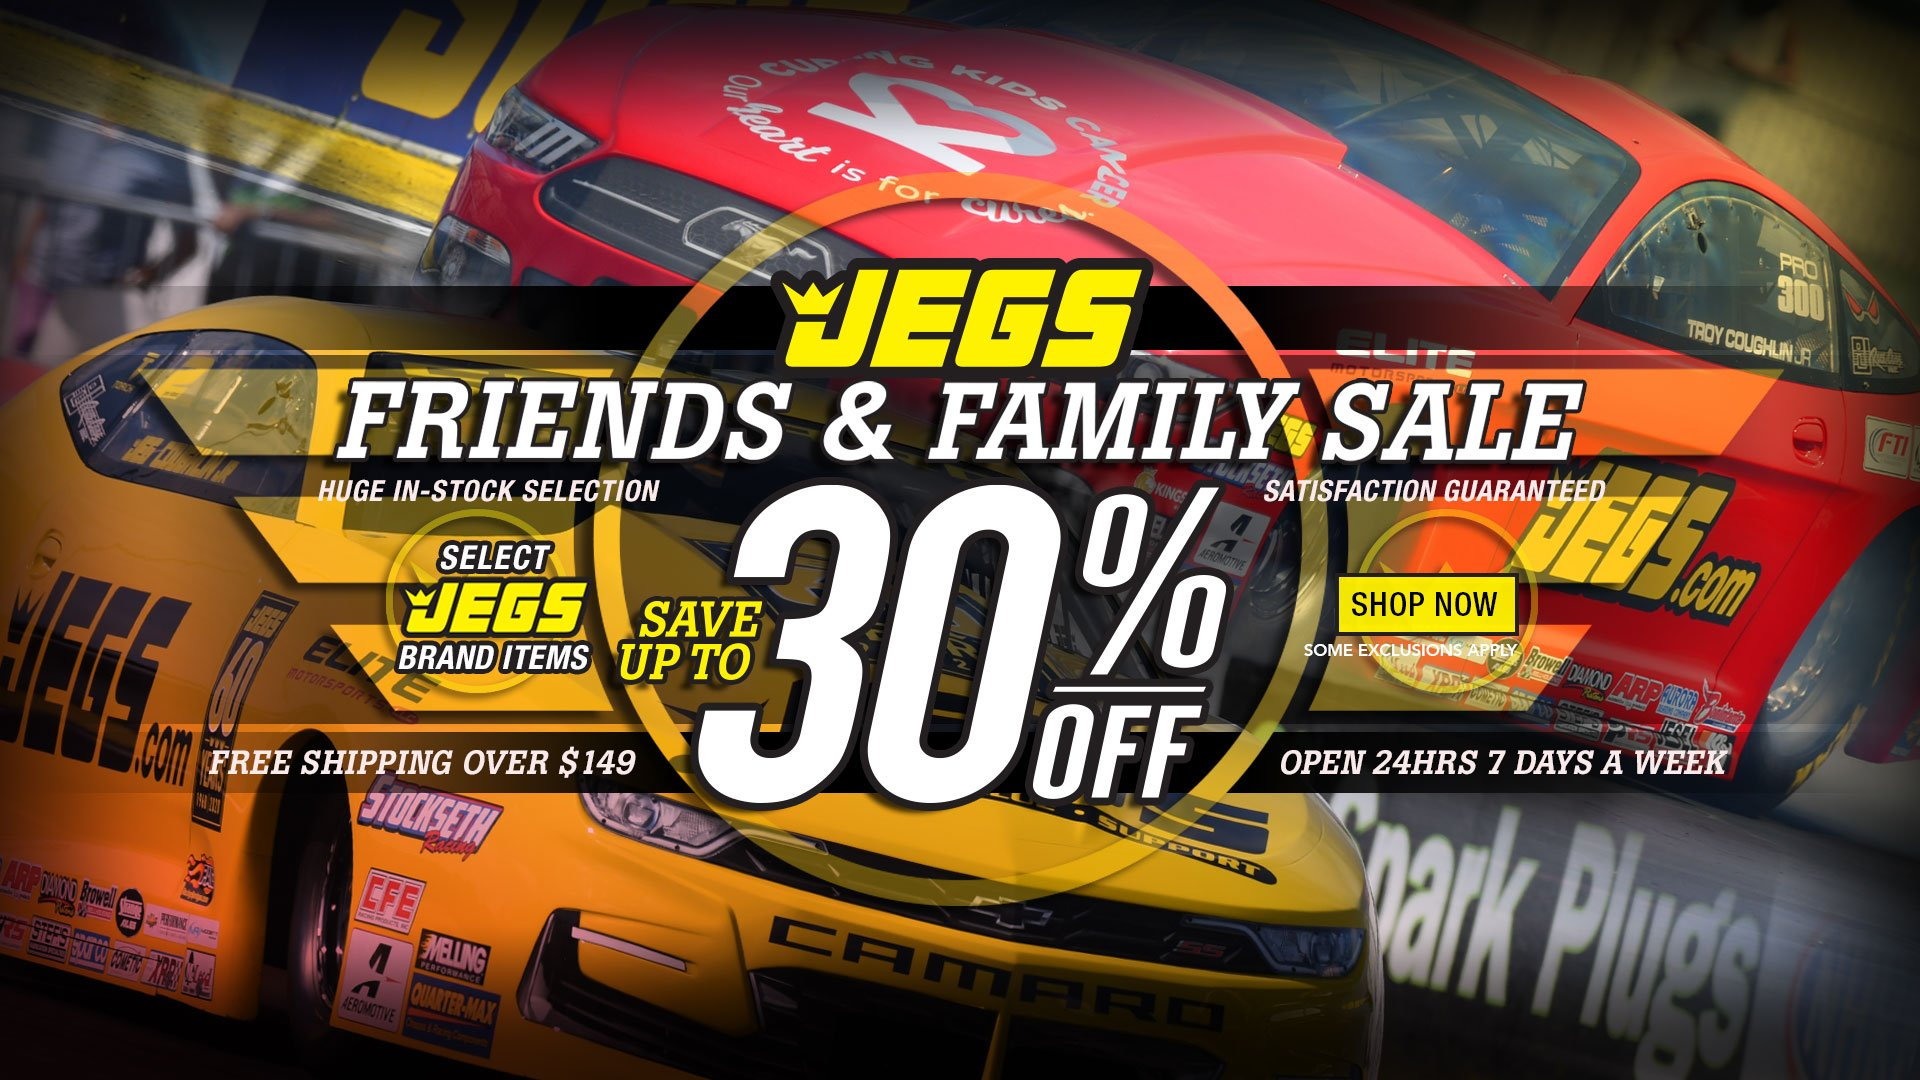 Friends and Family Save up to 30% on Select JEGS Brand Products